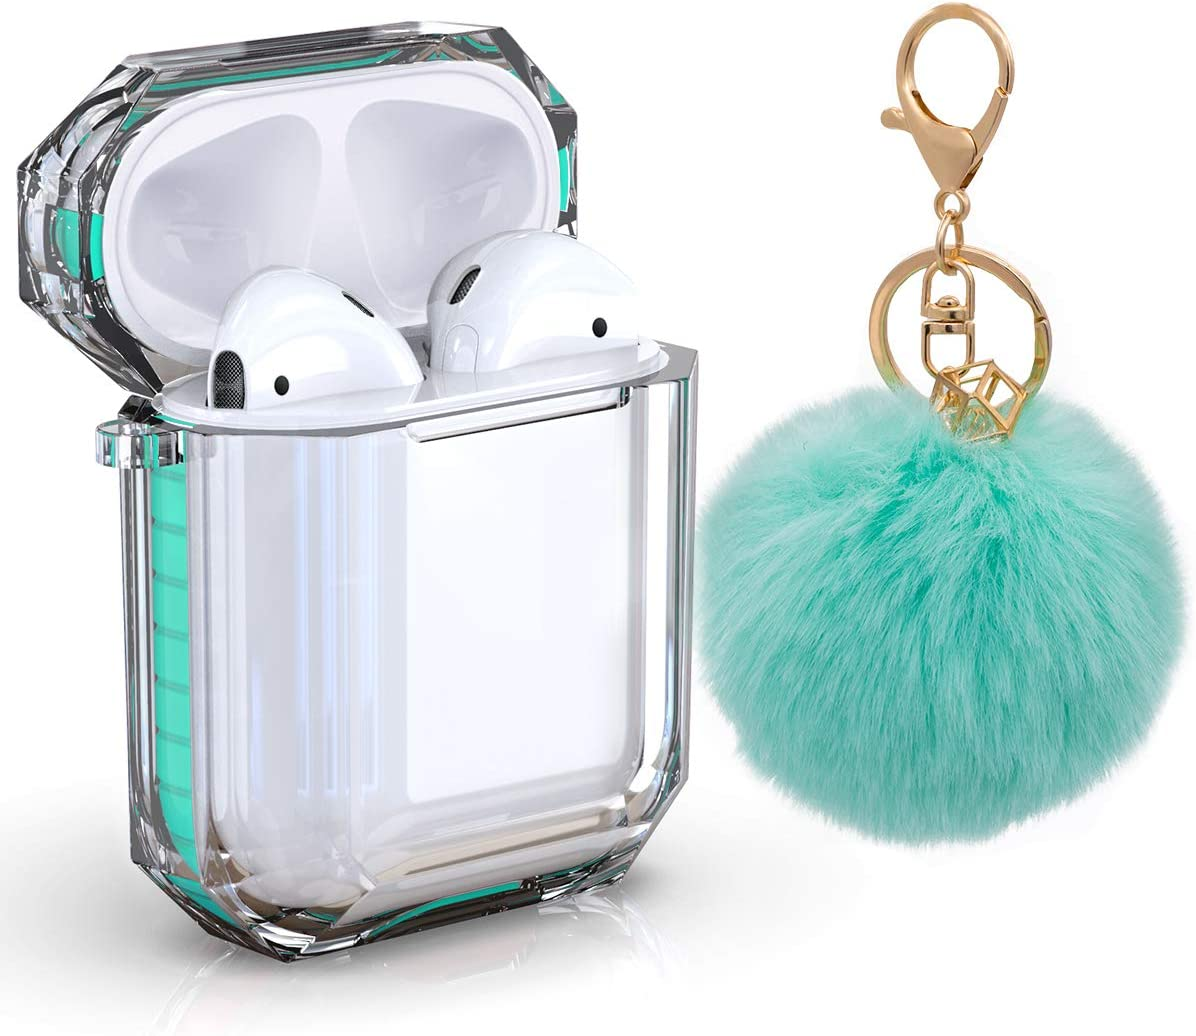 AirPods Case Cover, Zora Shockproof Protective Soft TPU Clear Apple Air Pods 1&2 Cover Case (Front LED Visible) Headphone Case with Cute Fur Ball Anti-Lost Keychain for Girls (Airpods 1, Mint Green)